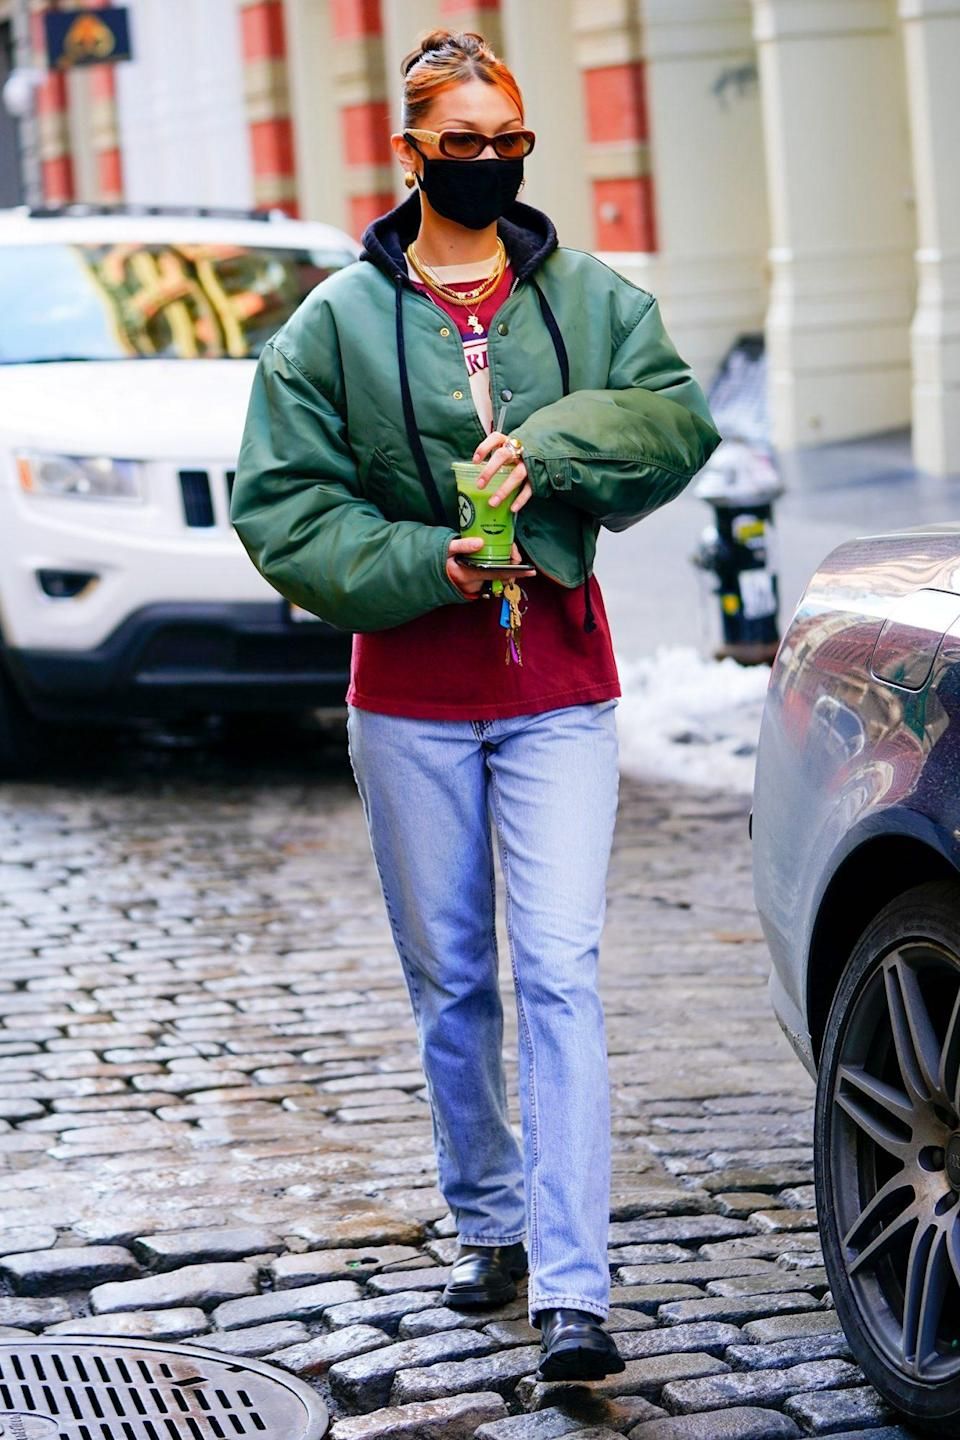 <p>Another day, another green juice for Bella Hadid, who matches her drink to her jacket in New York City on Tuesday.</p>